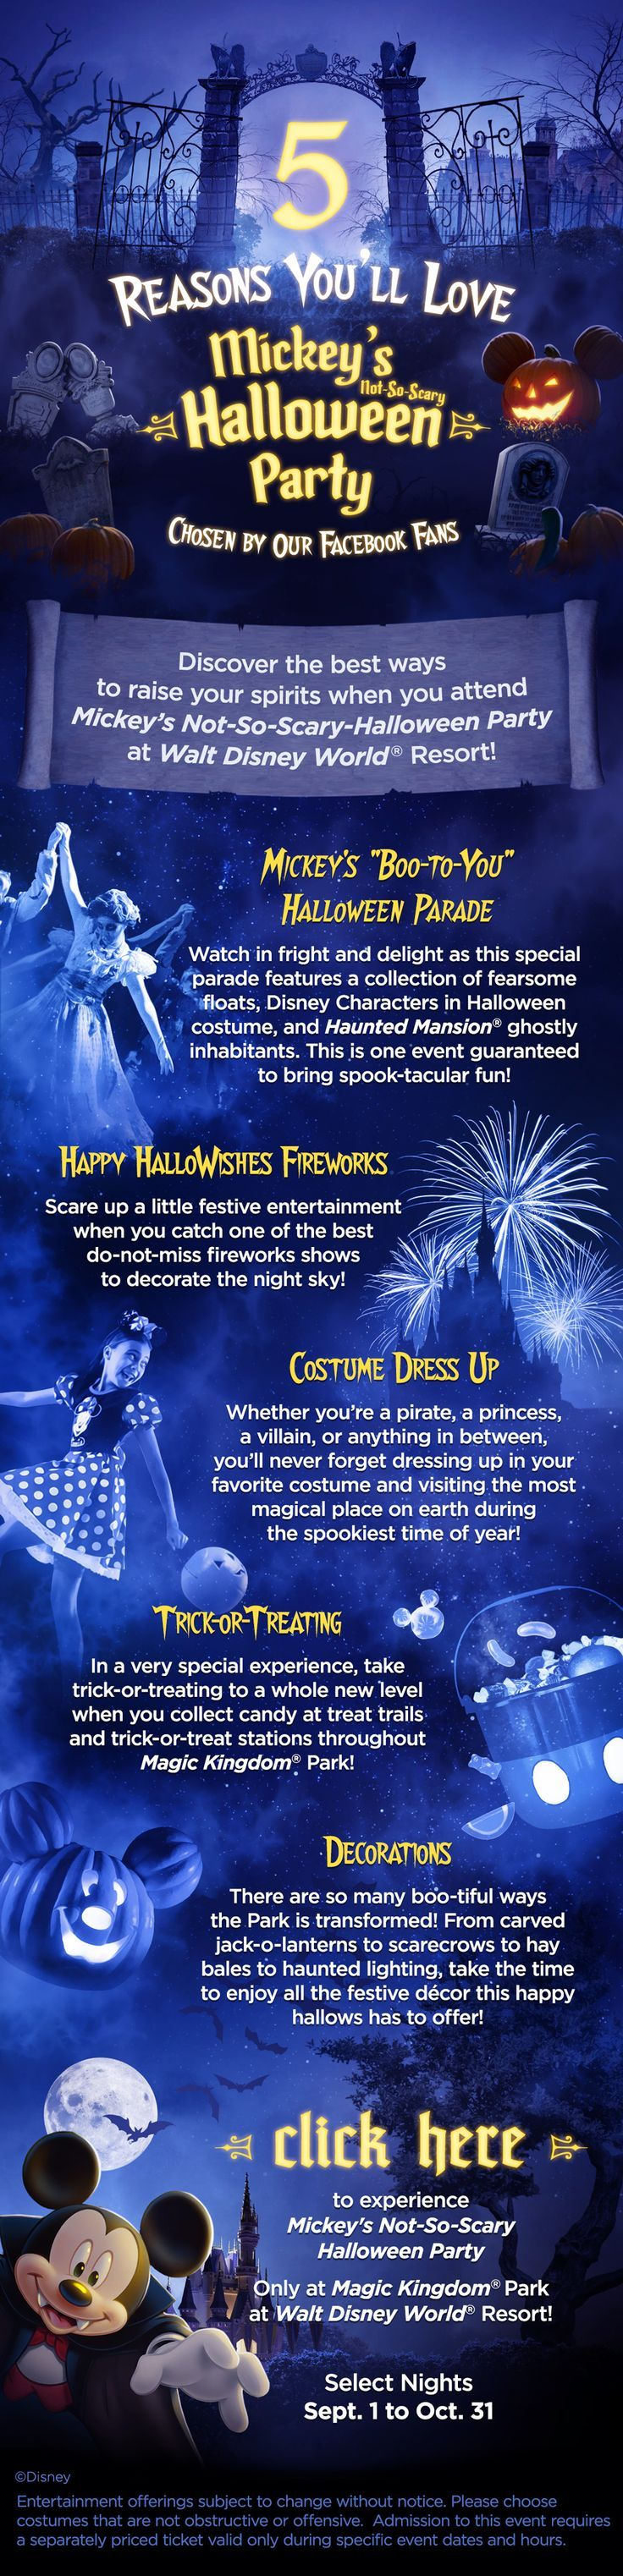 mickey's halloween party information